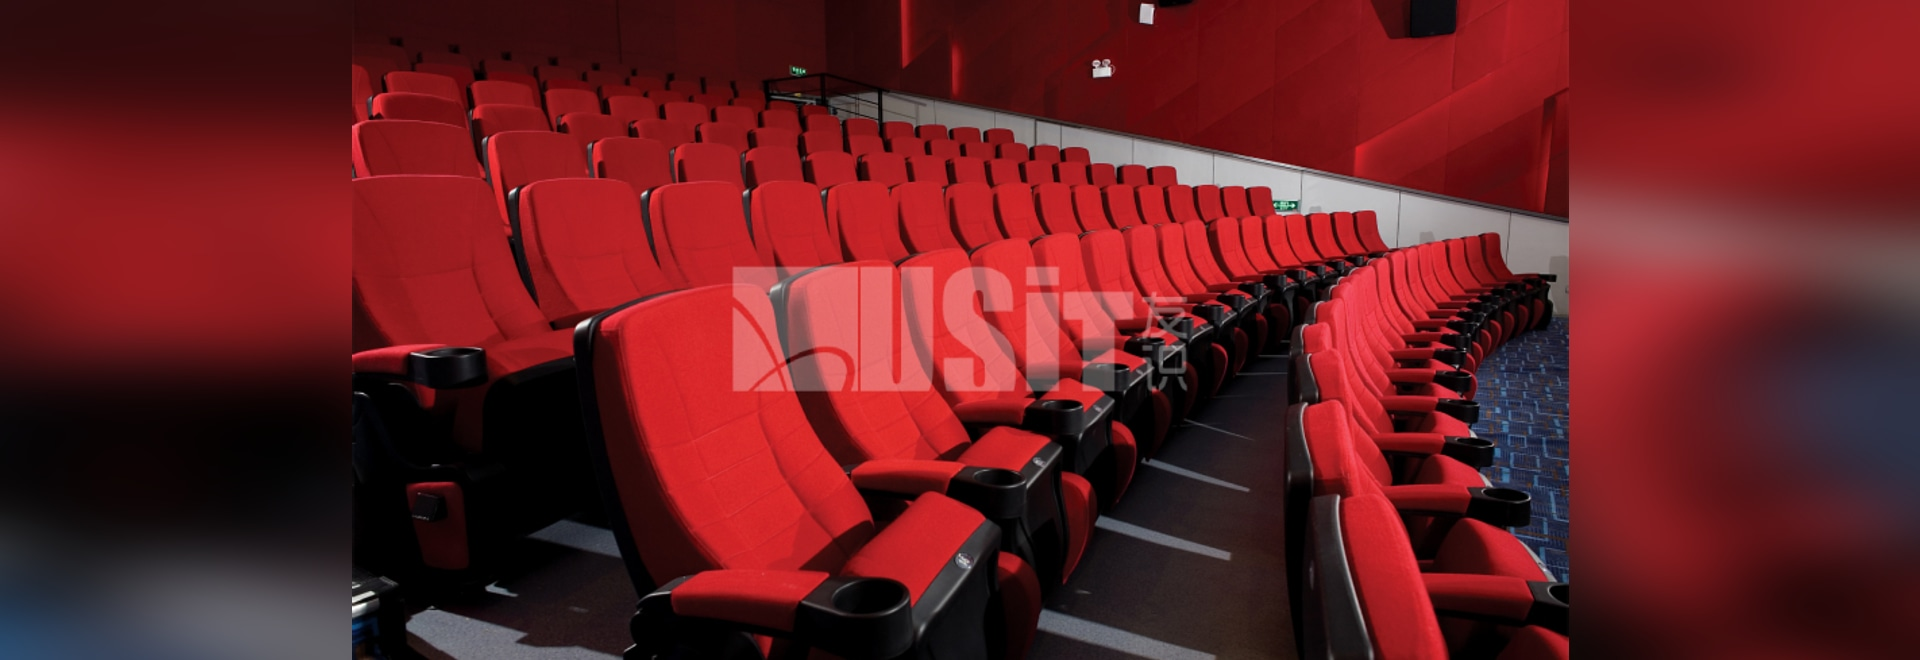 Usit Seating UA-630 in Cinema / Theater of China